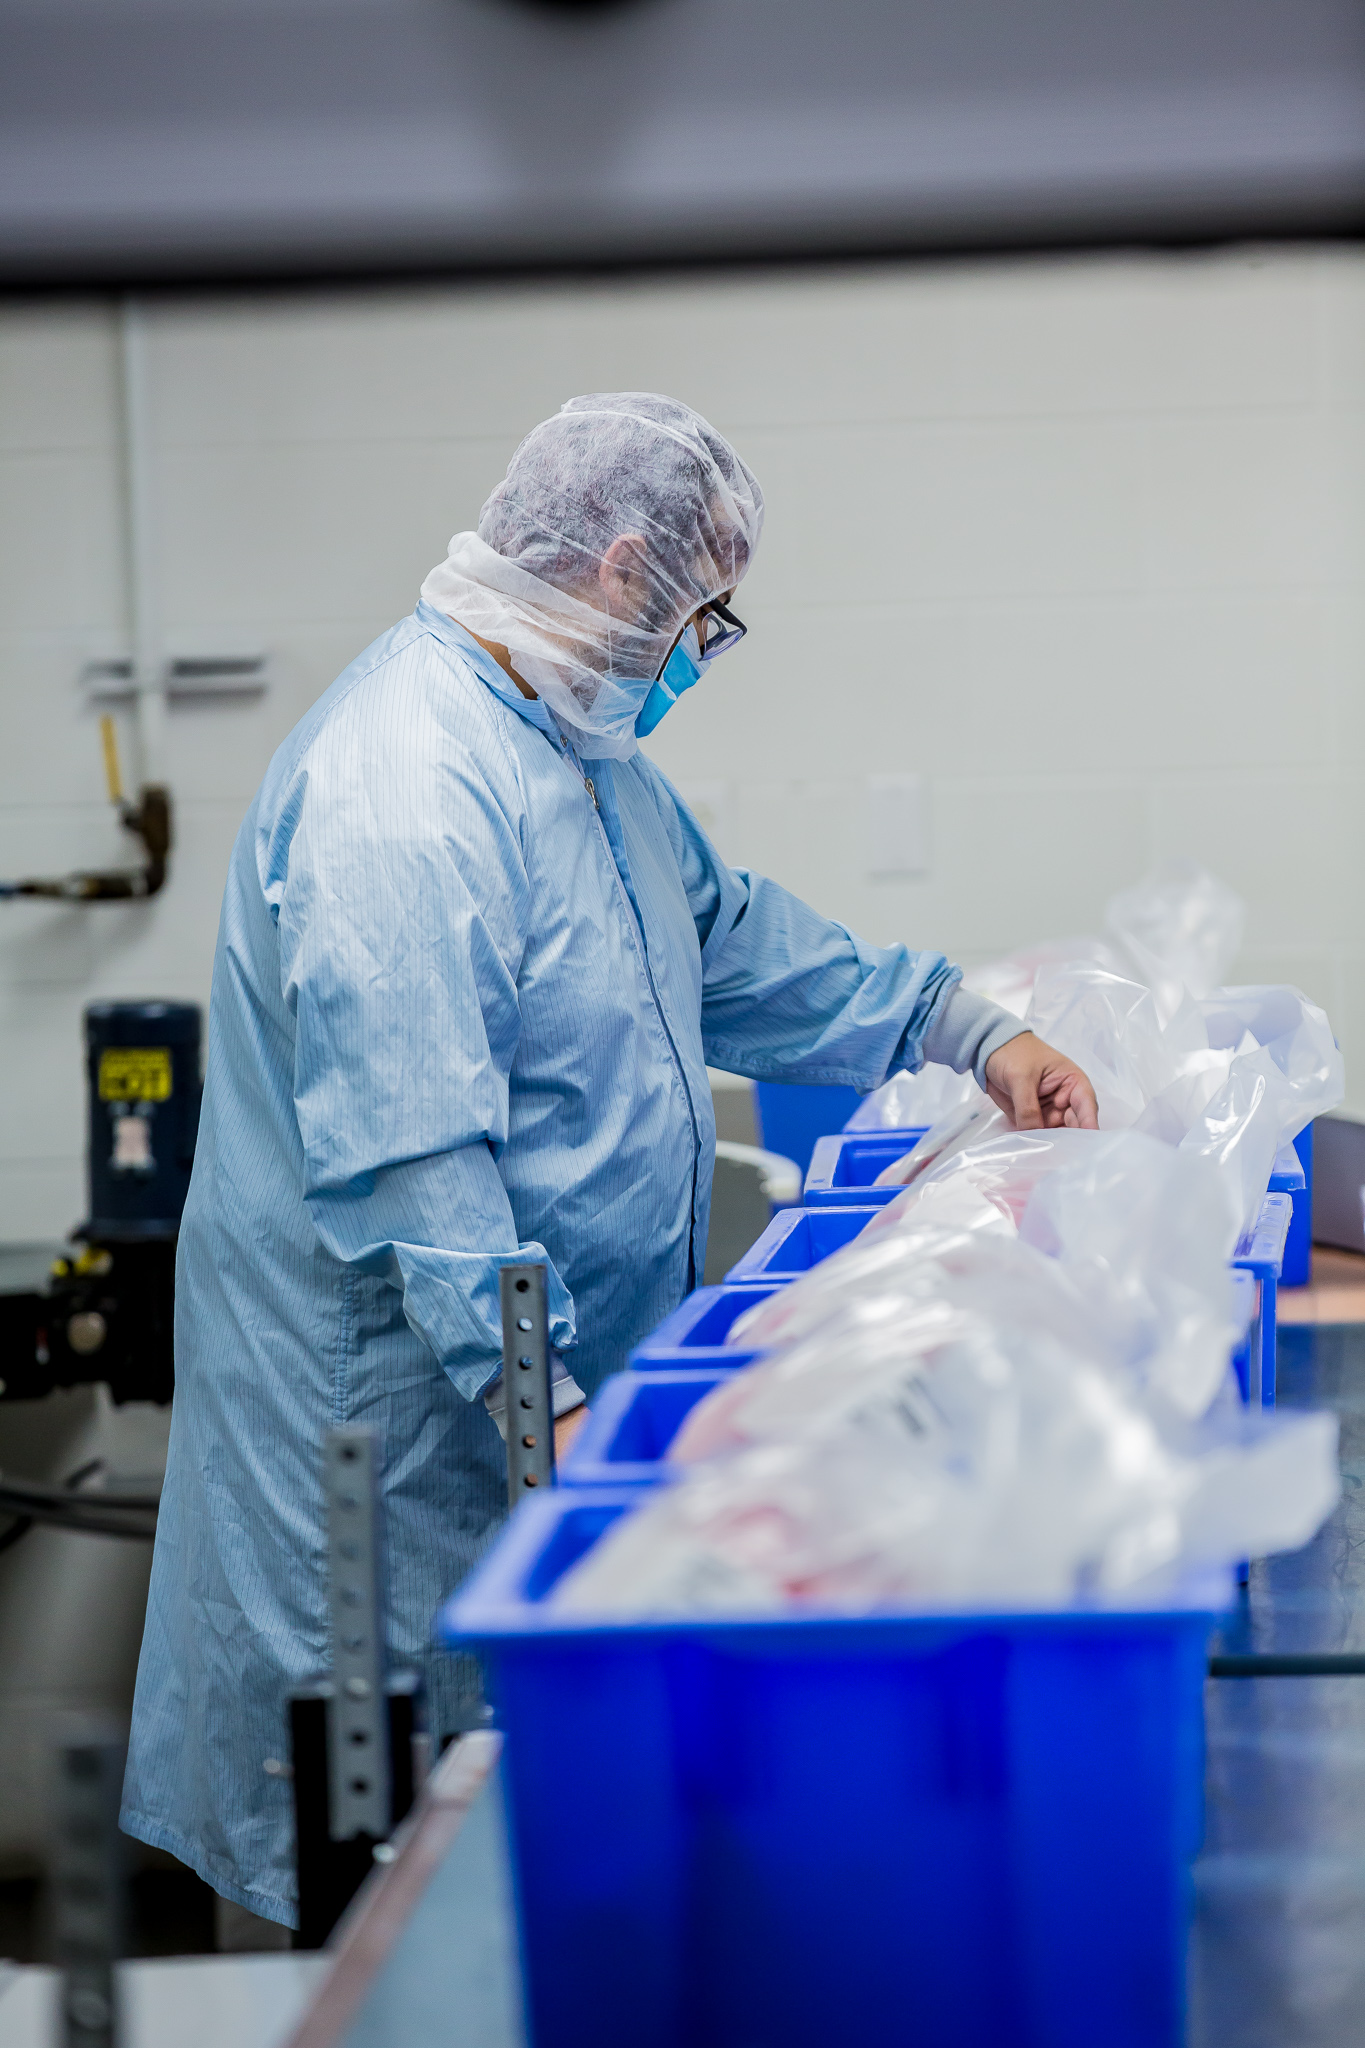 Person in clean room gear inspecting bags